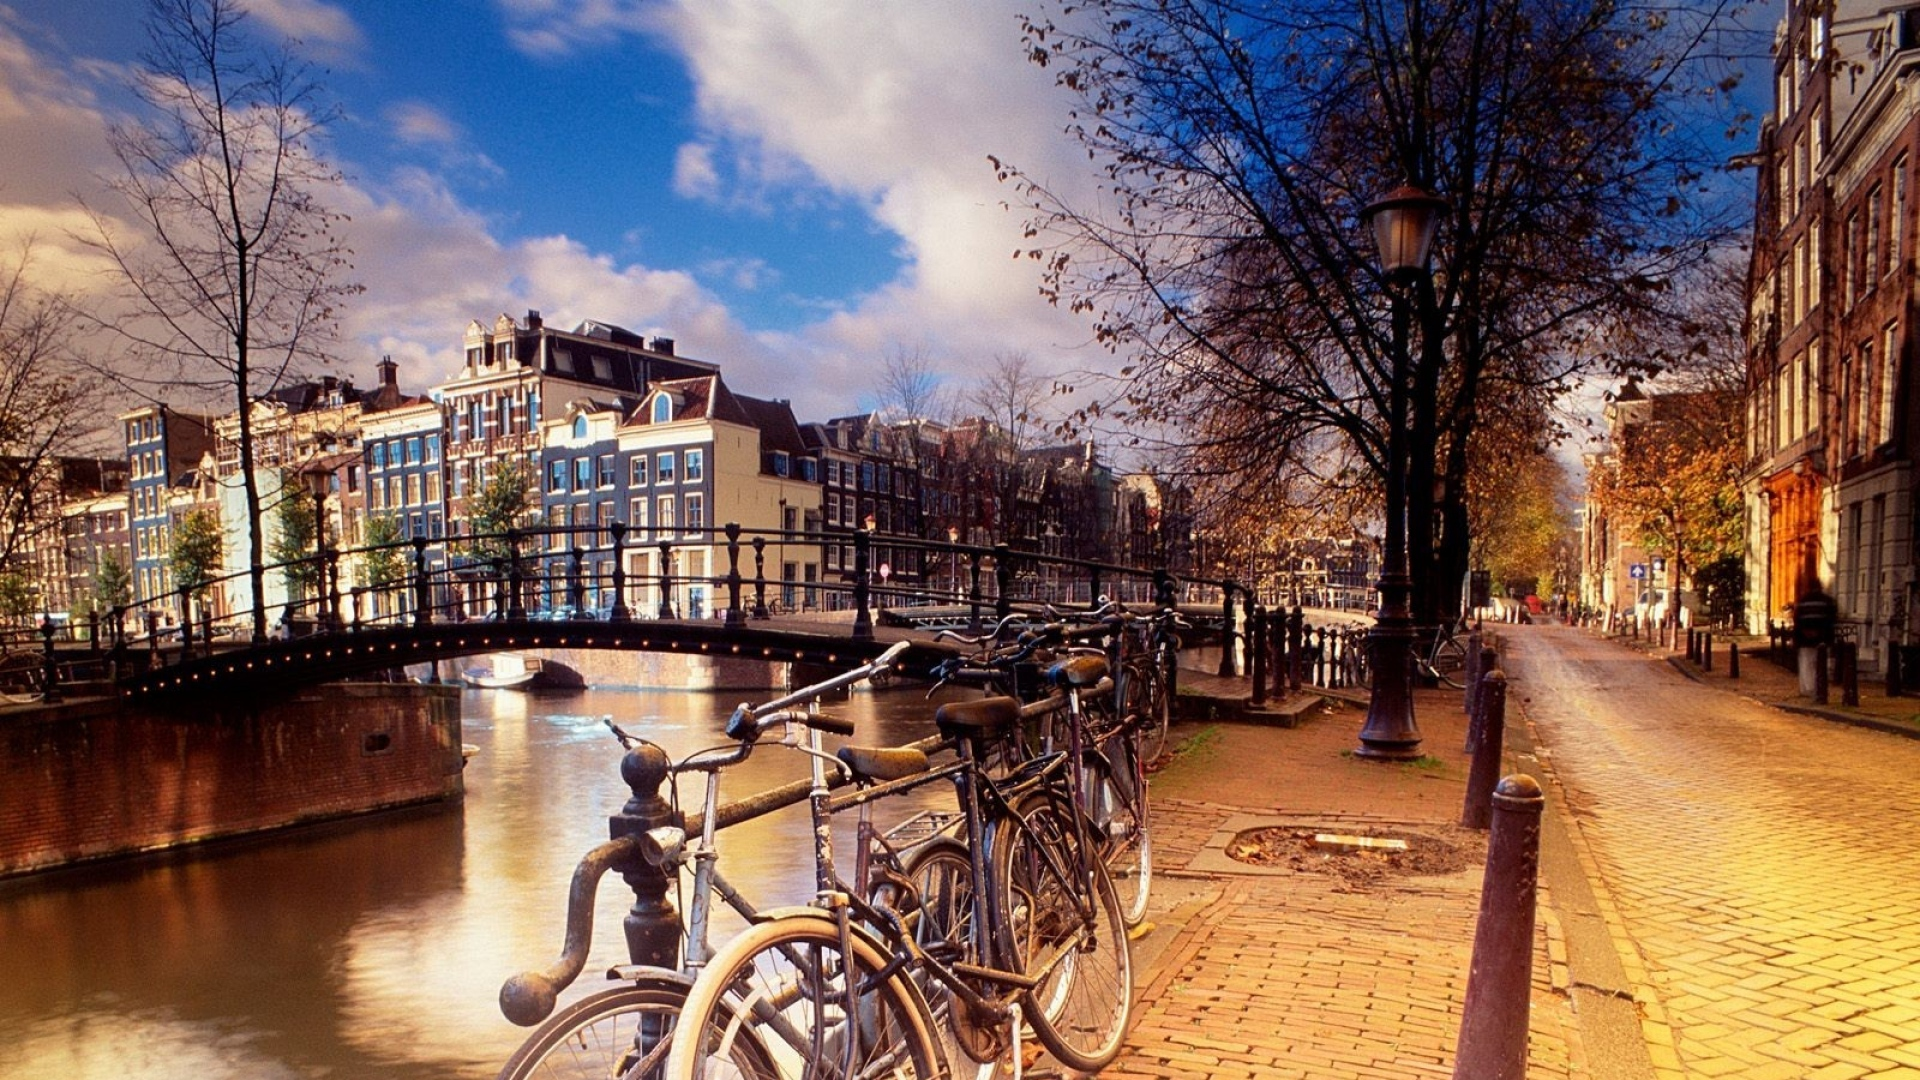 Get The Latest Amsterdam Bicycles Street News Pictures And Videos Learn All About From Wallpapers4uorg Your Wallpaper